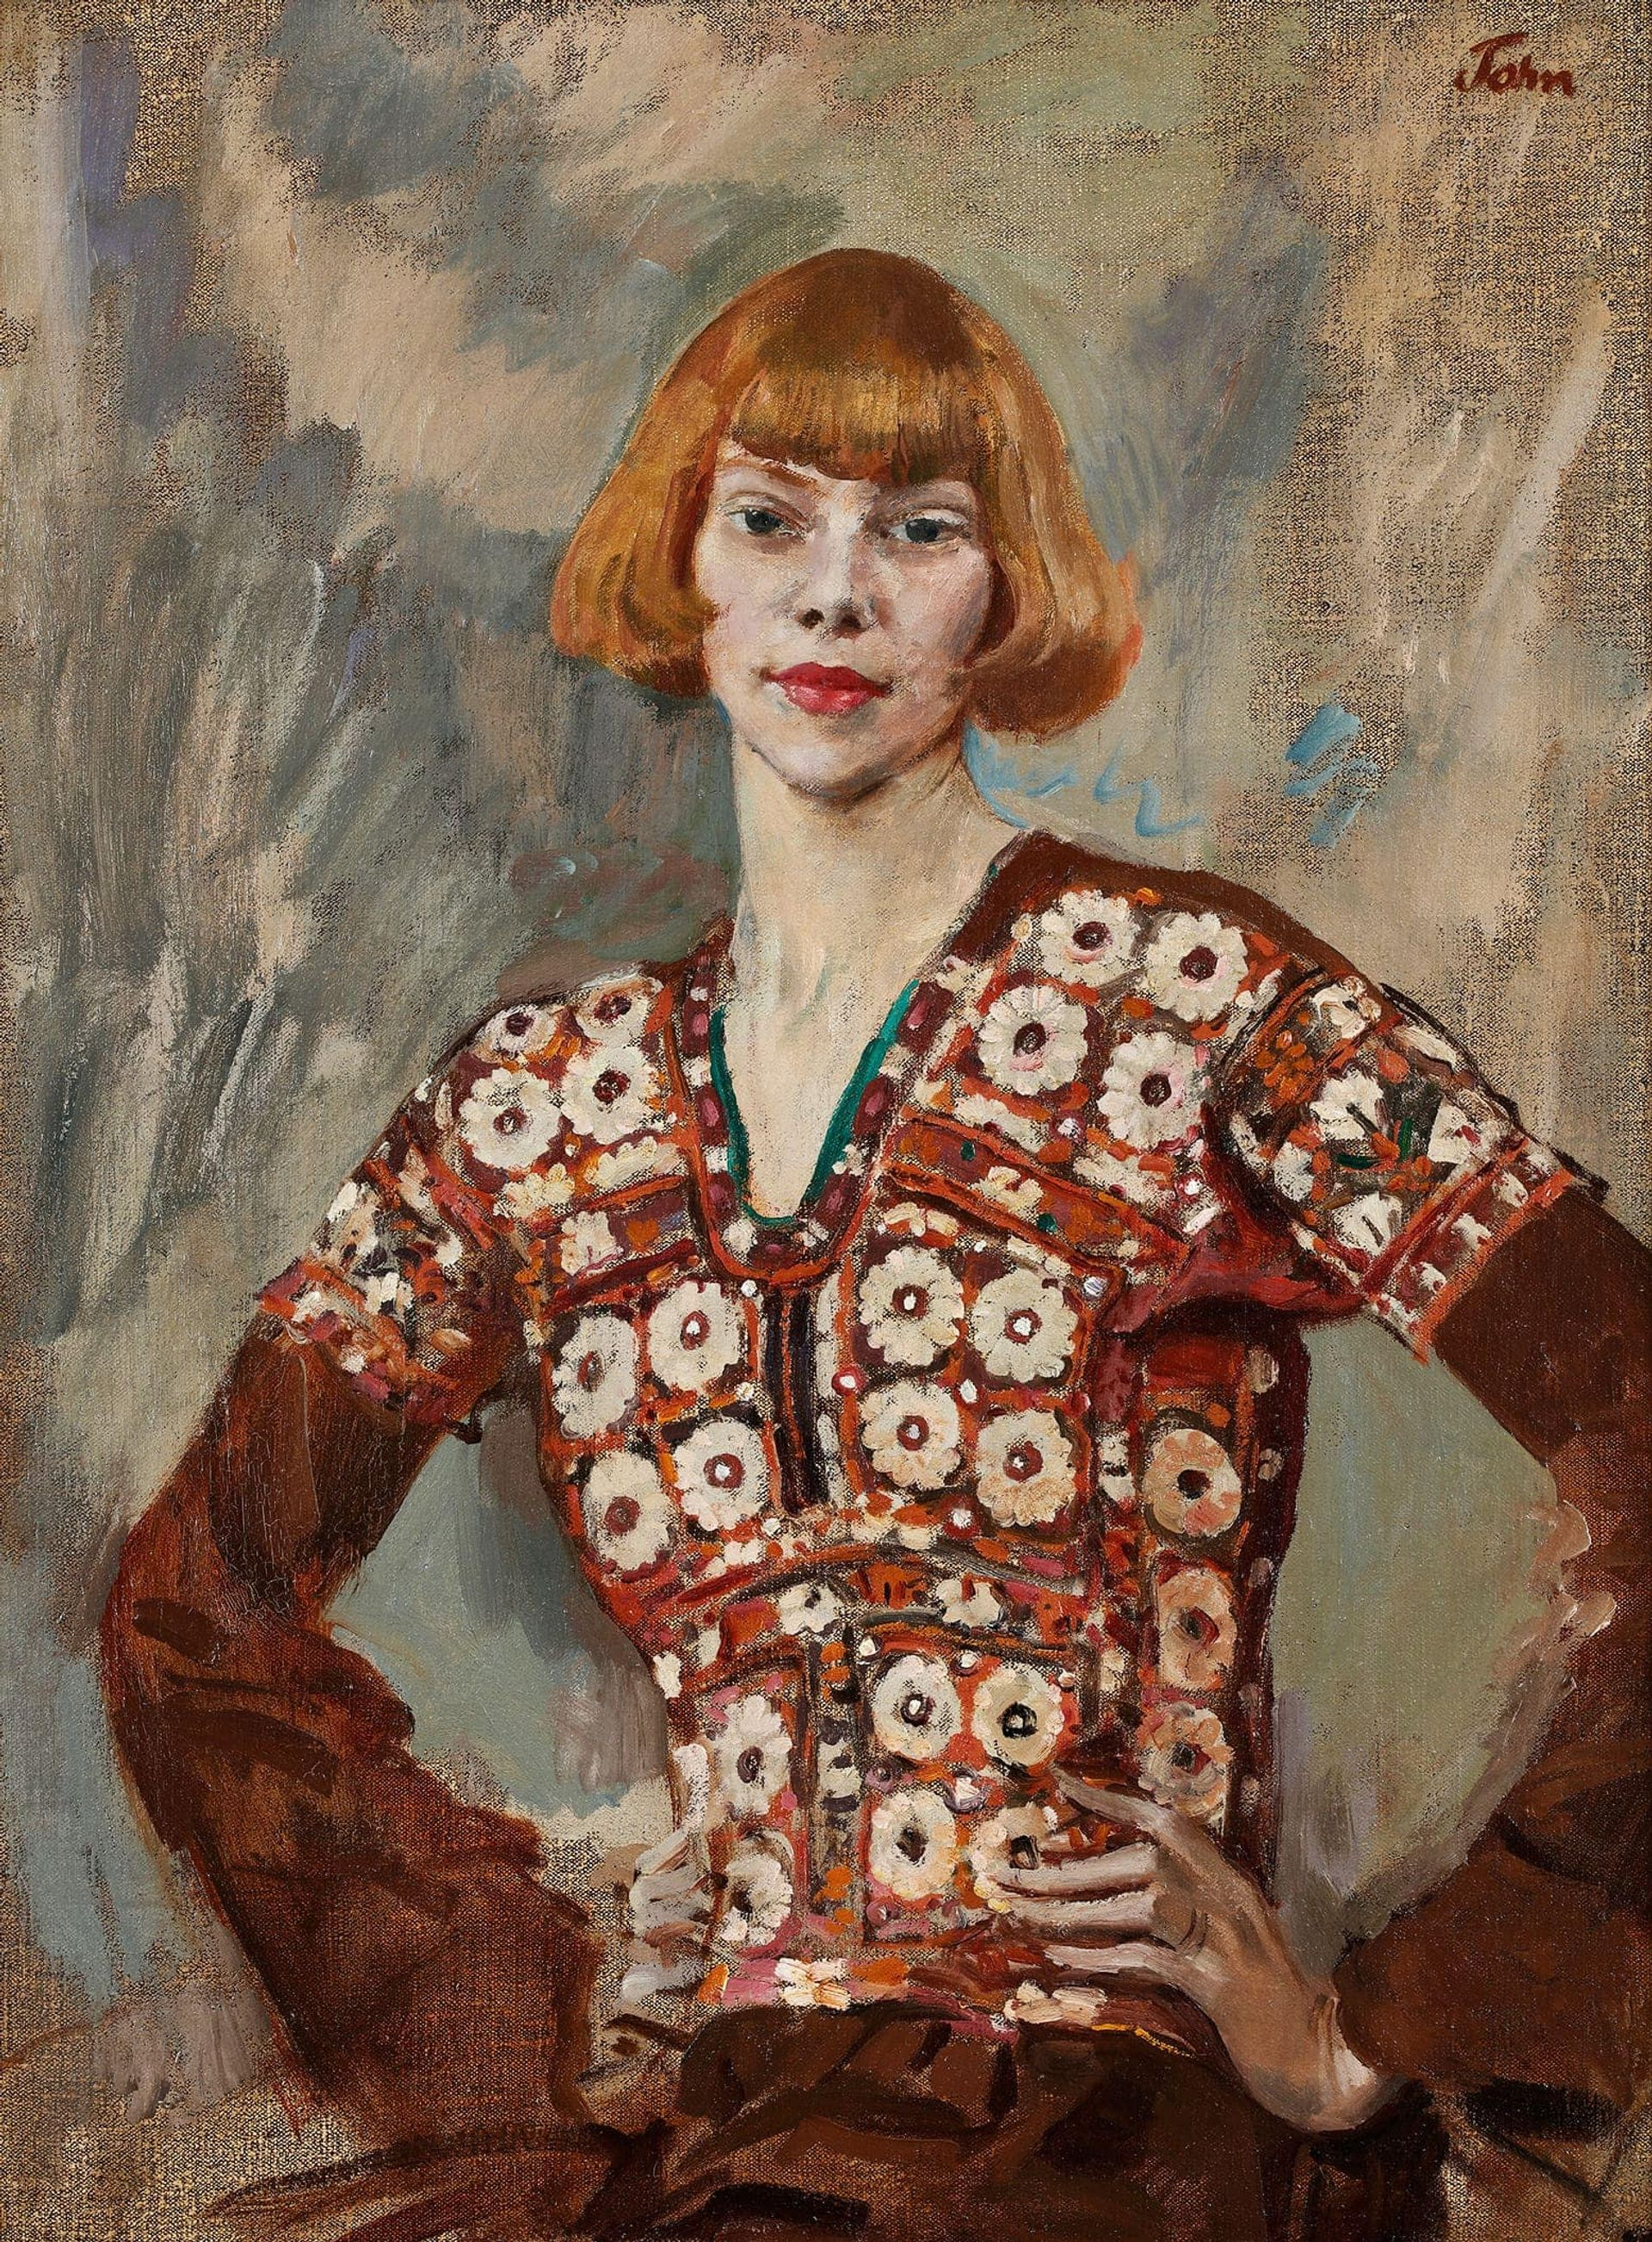 Augustus John's portrait of the poet, actress and artist's model Iris Beerbohm Tree (1920), from Phillip Mould Courtesy of Phillip Mould